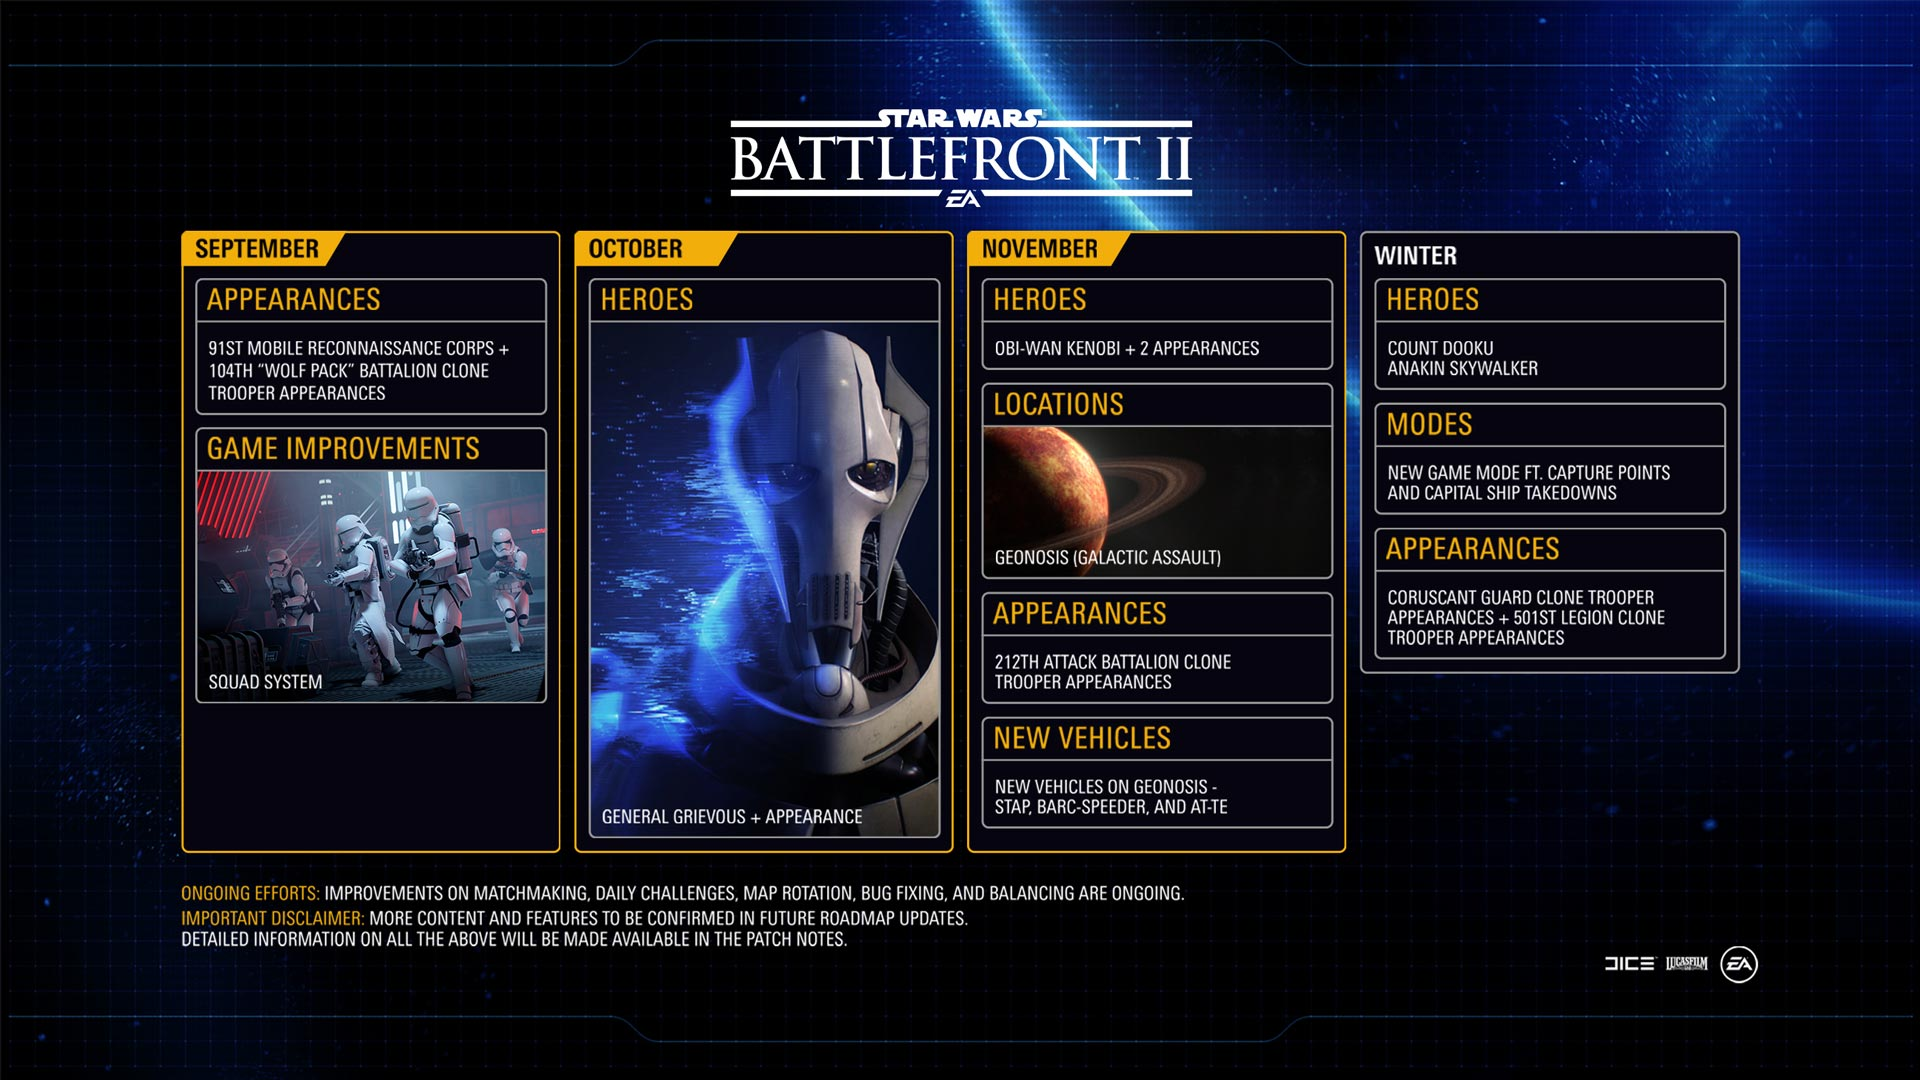 Battlefront 2: Winter Roadmap.